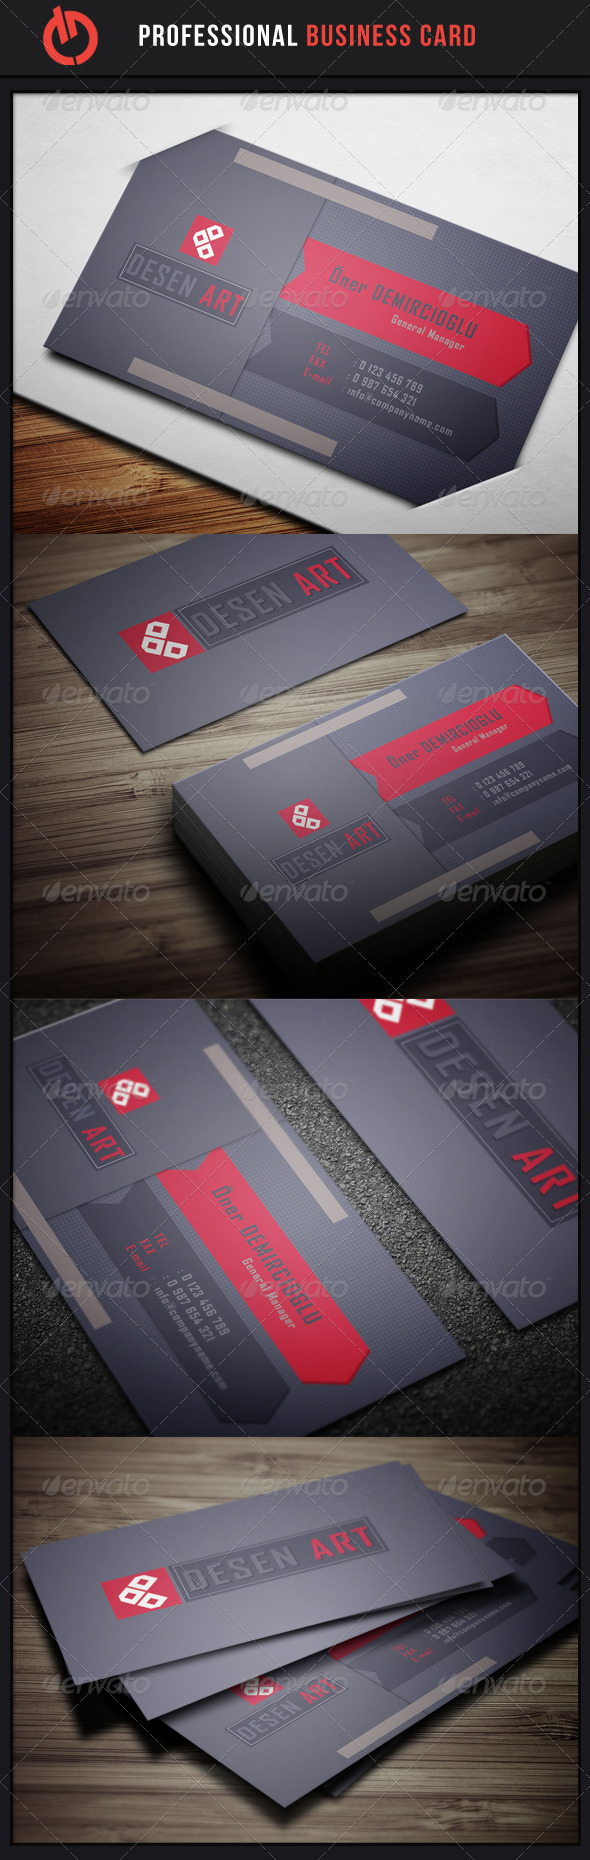 GraphicRiver Professional Business Card 9 3529349